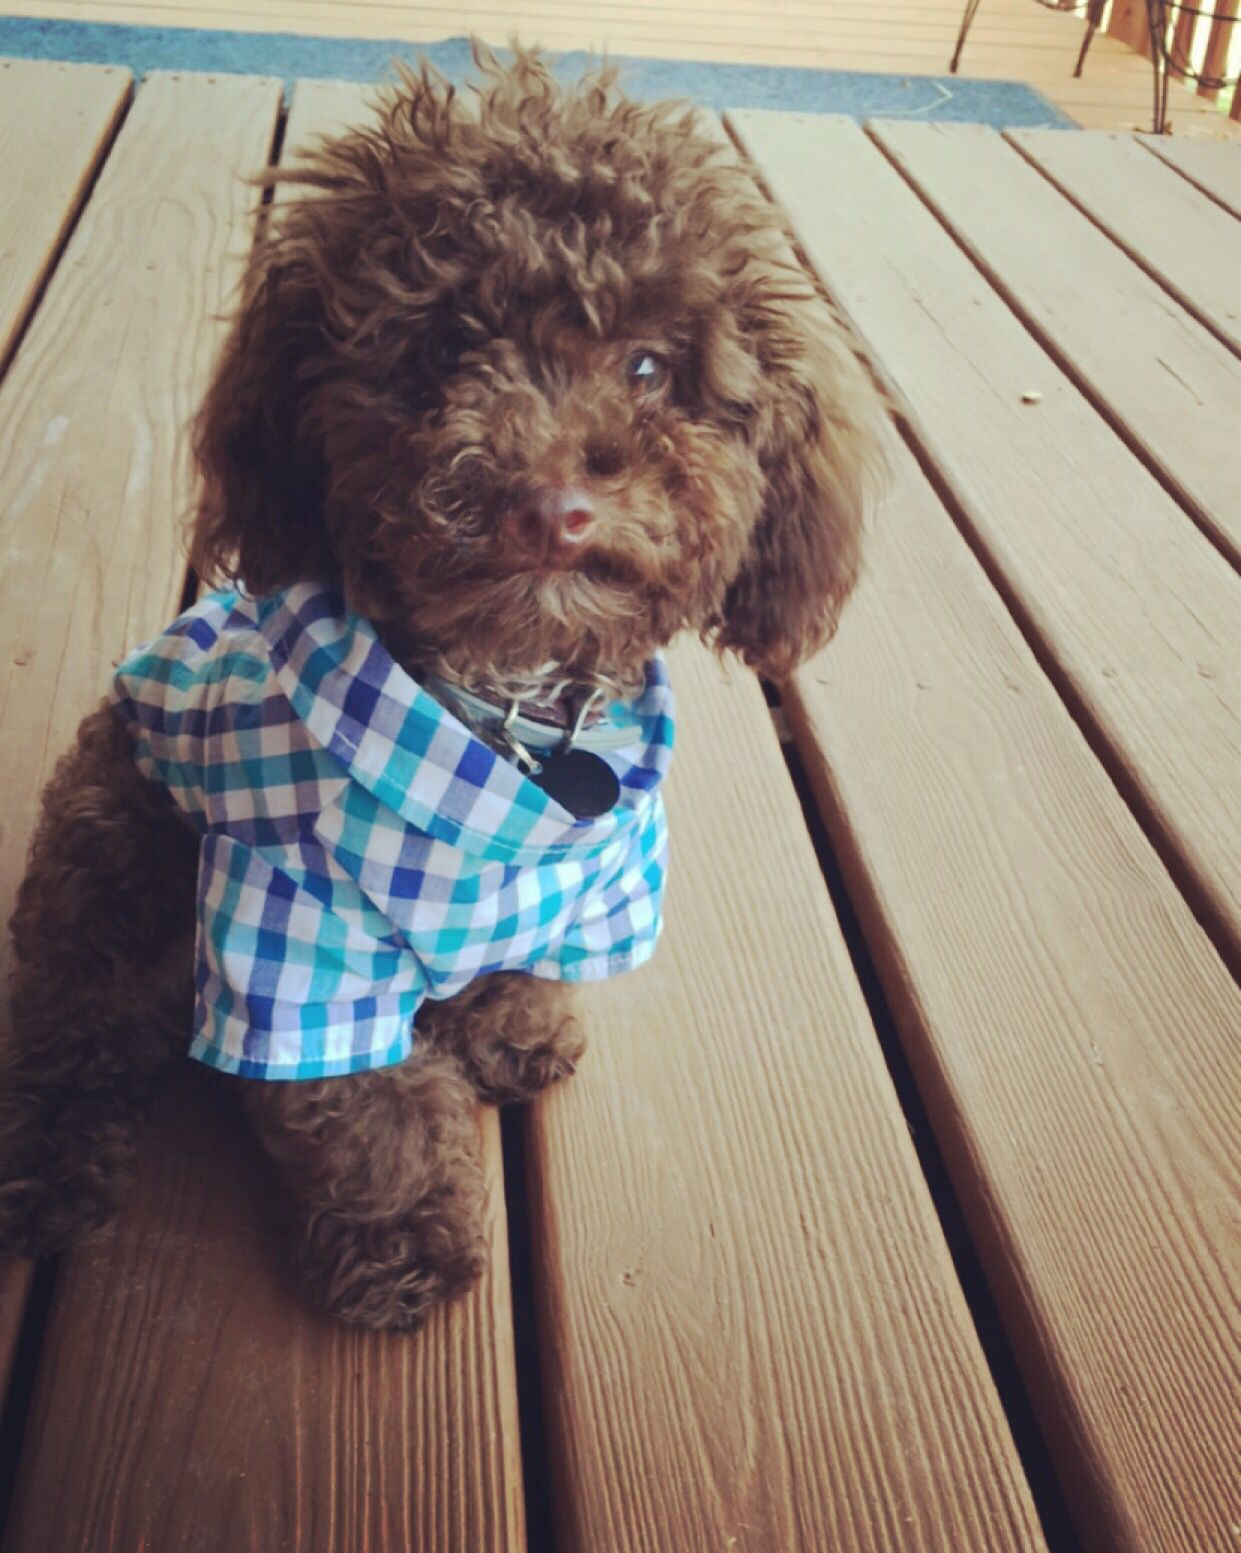 Cute Chocolate Toy Poodle In A Plaid Shirt His Name Is Rocky